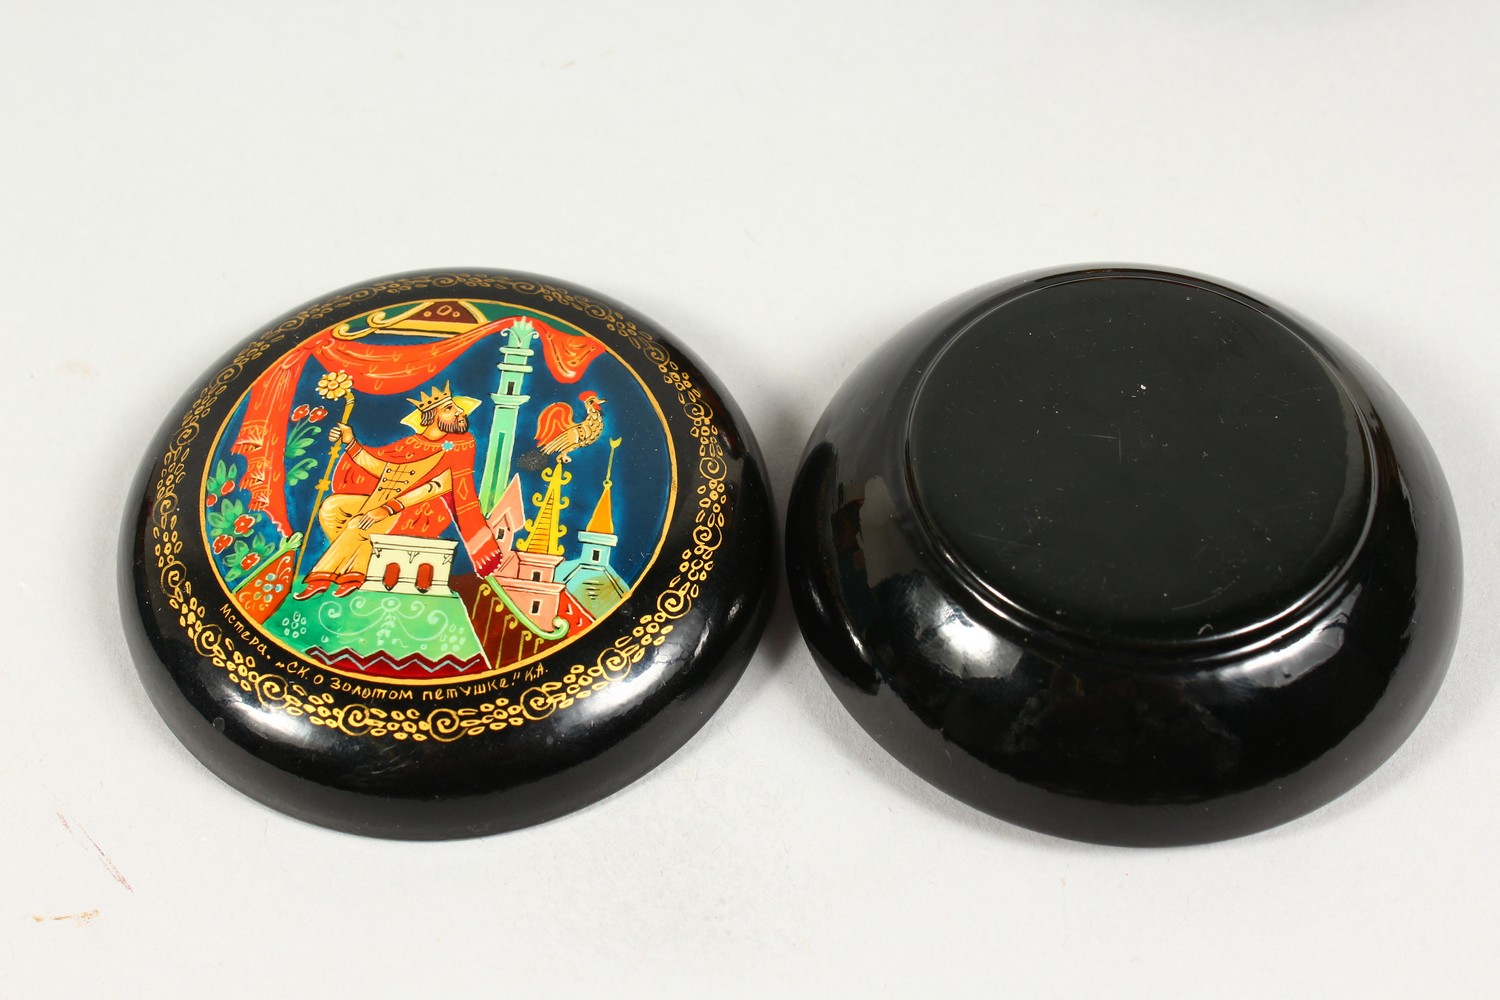 TWO SMALL RUSSIAN CIRCULAR BLACK PAPIER MACHE BOXES AND COVERS. 2.5ins diameter. - Image 5 of 12